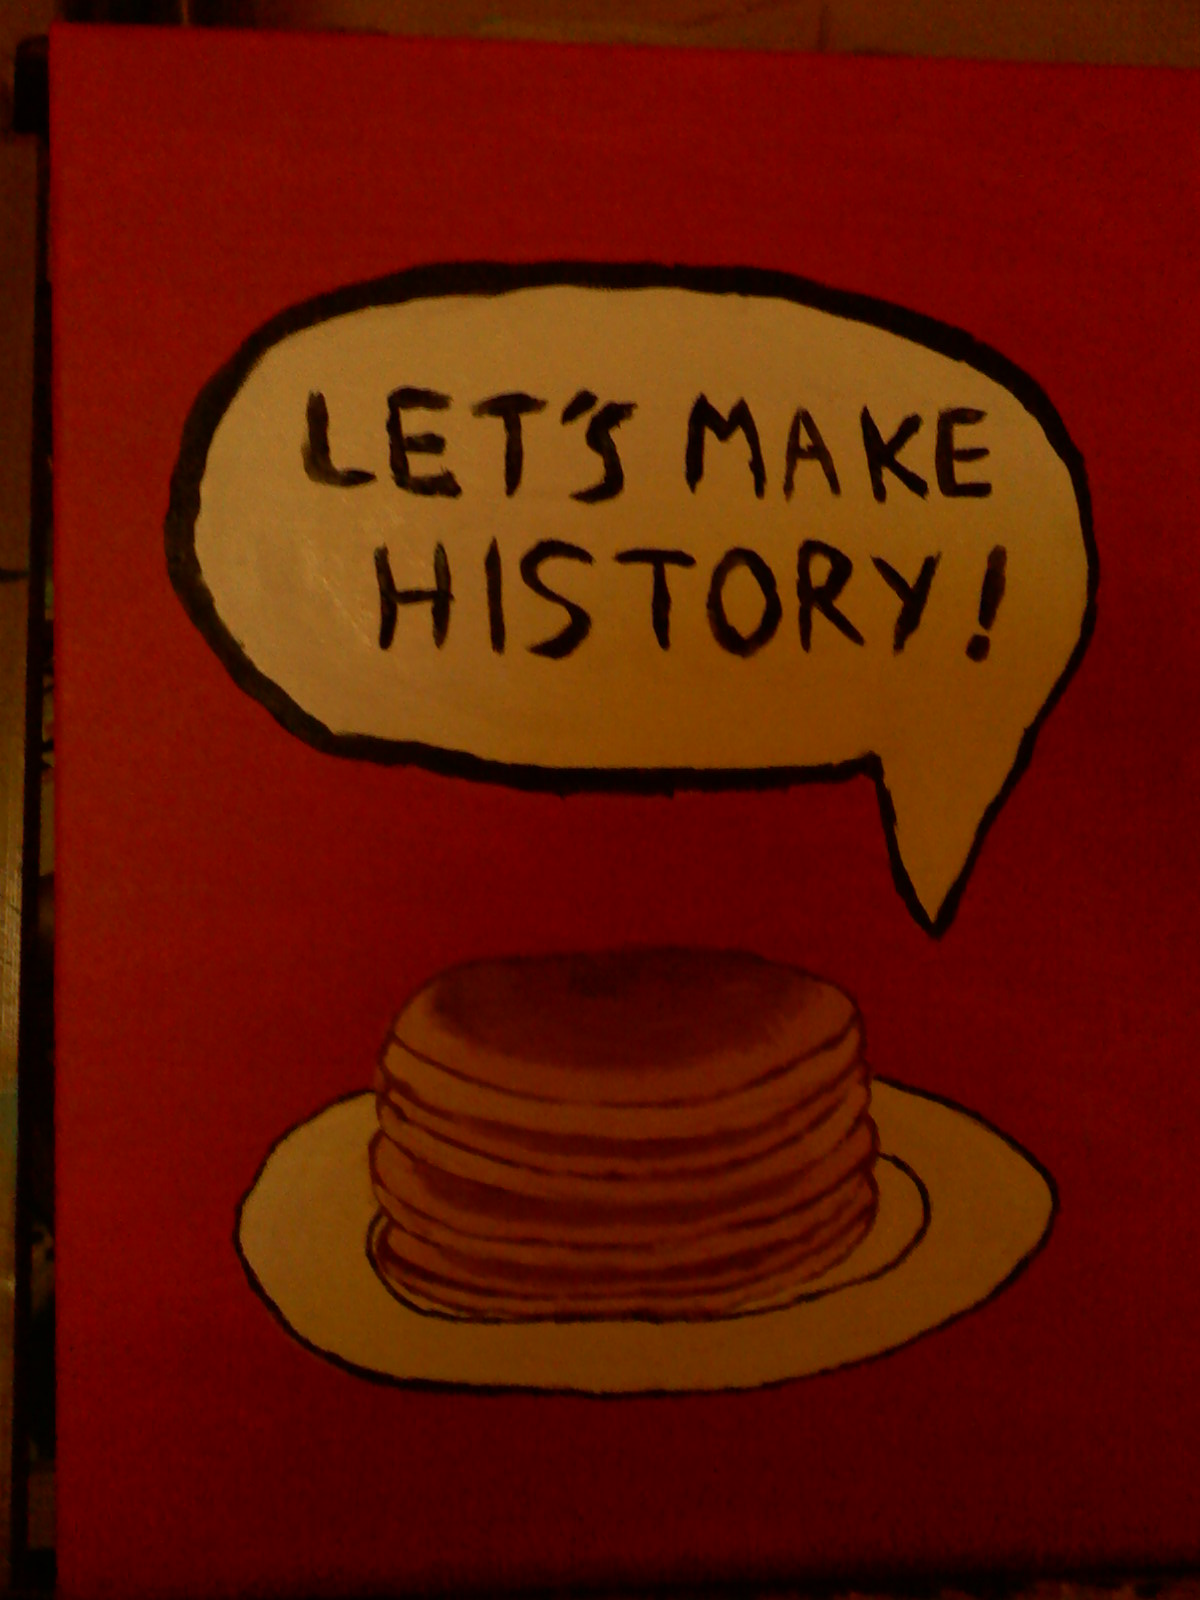 history with pancakes